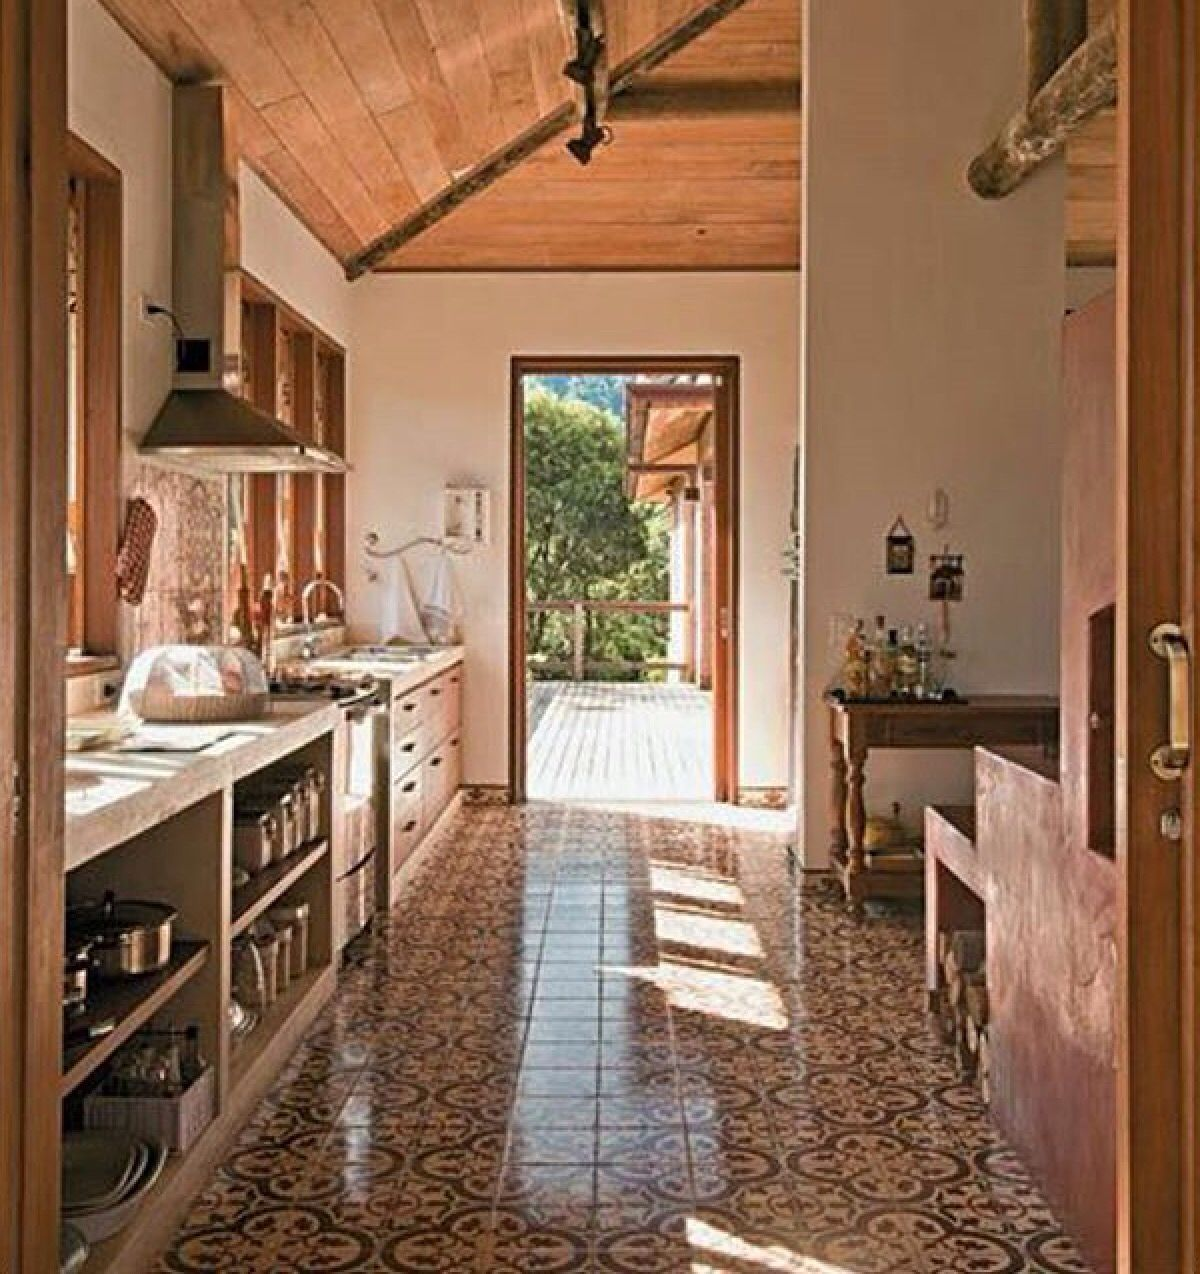 Cocina decoracion deco pinterest kitchens - Cocinas rusticas de campo ...